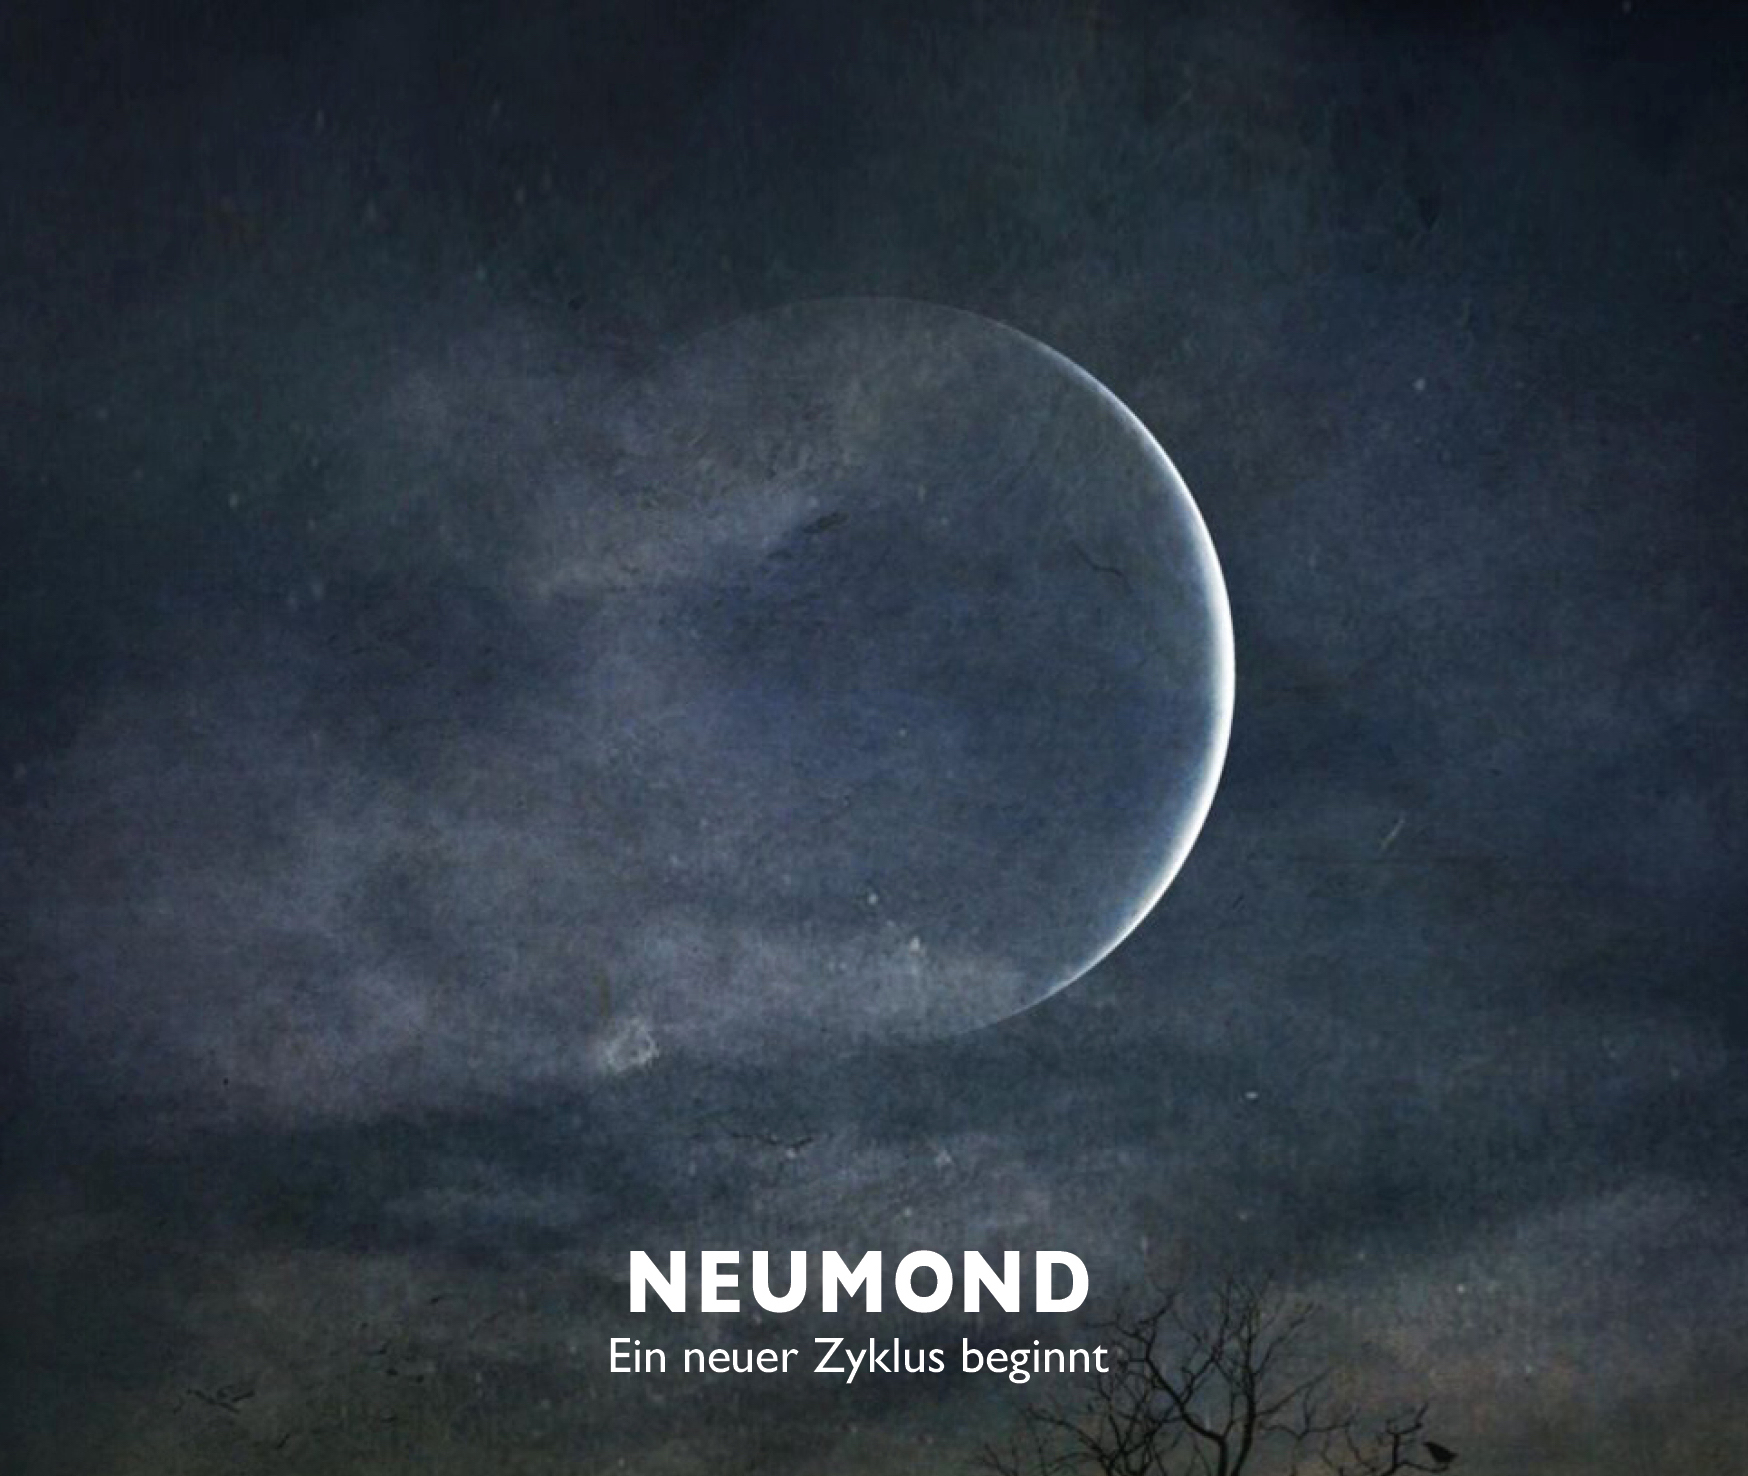 NEUMOND in Stier